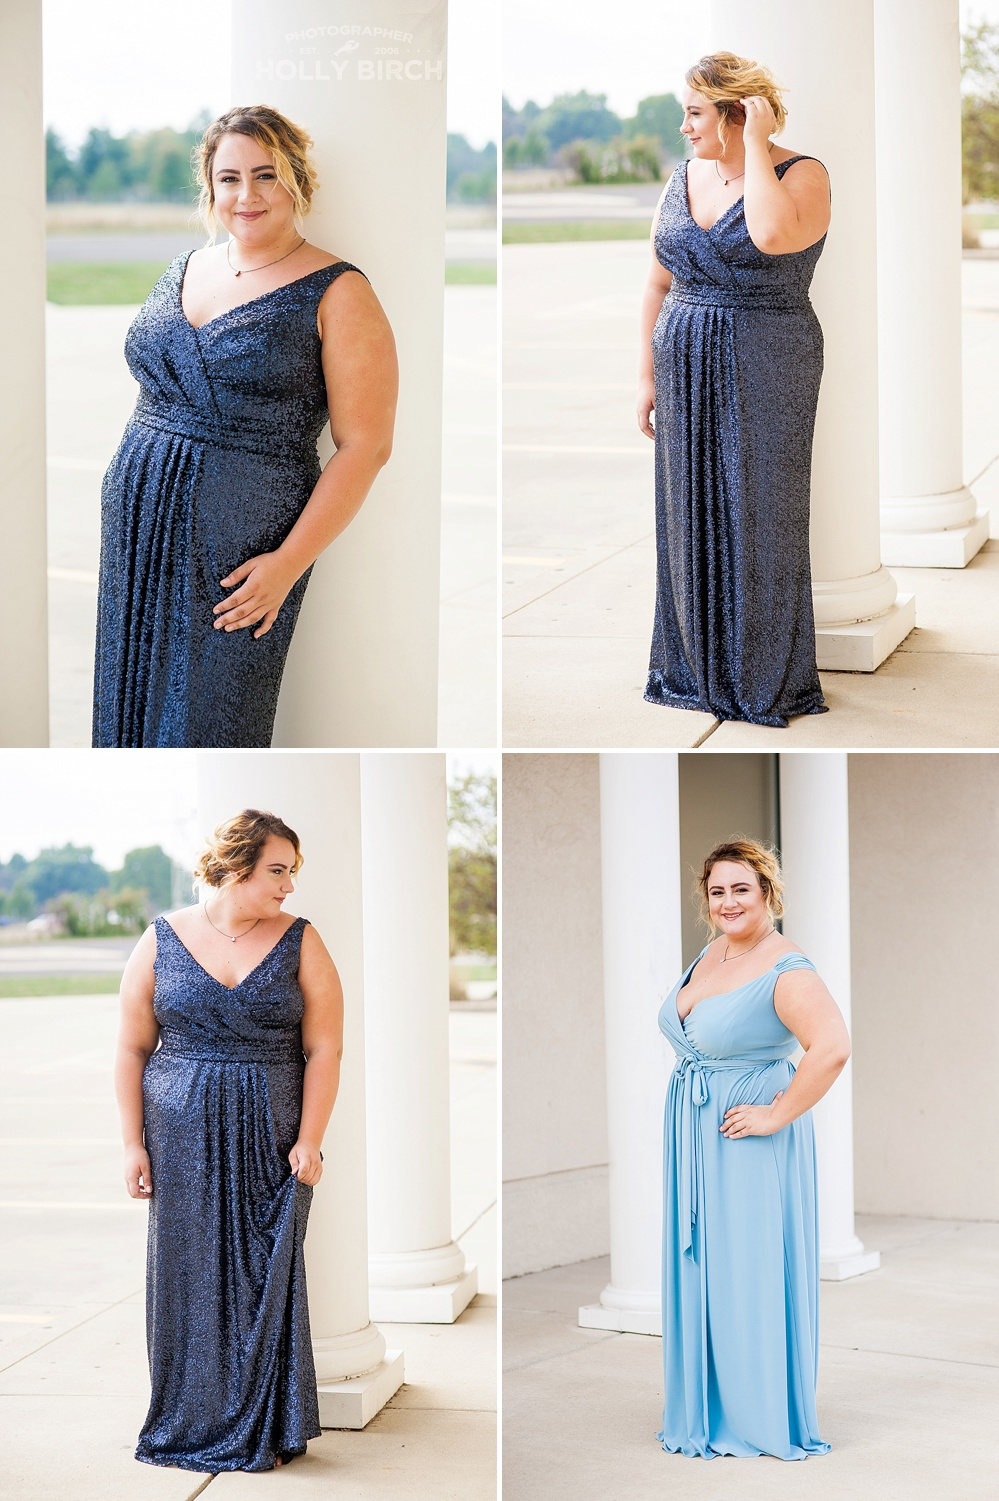 plus-sized bridesmaid dress inspriation